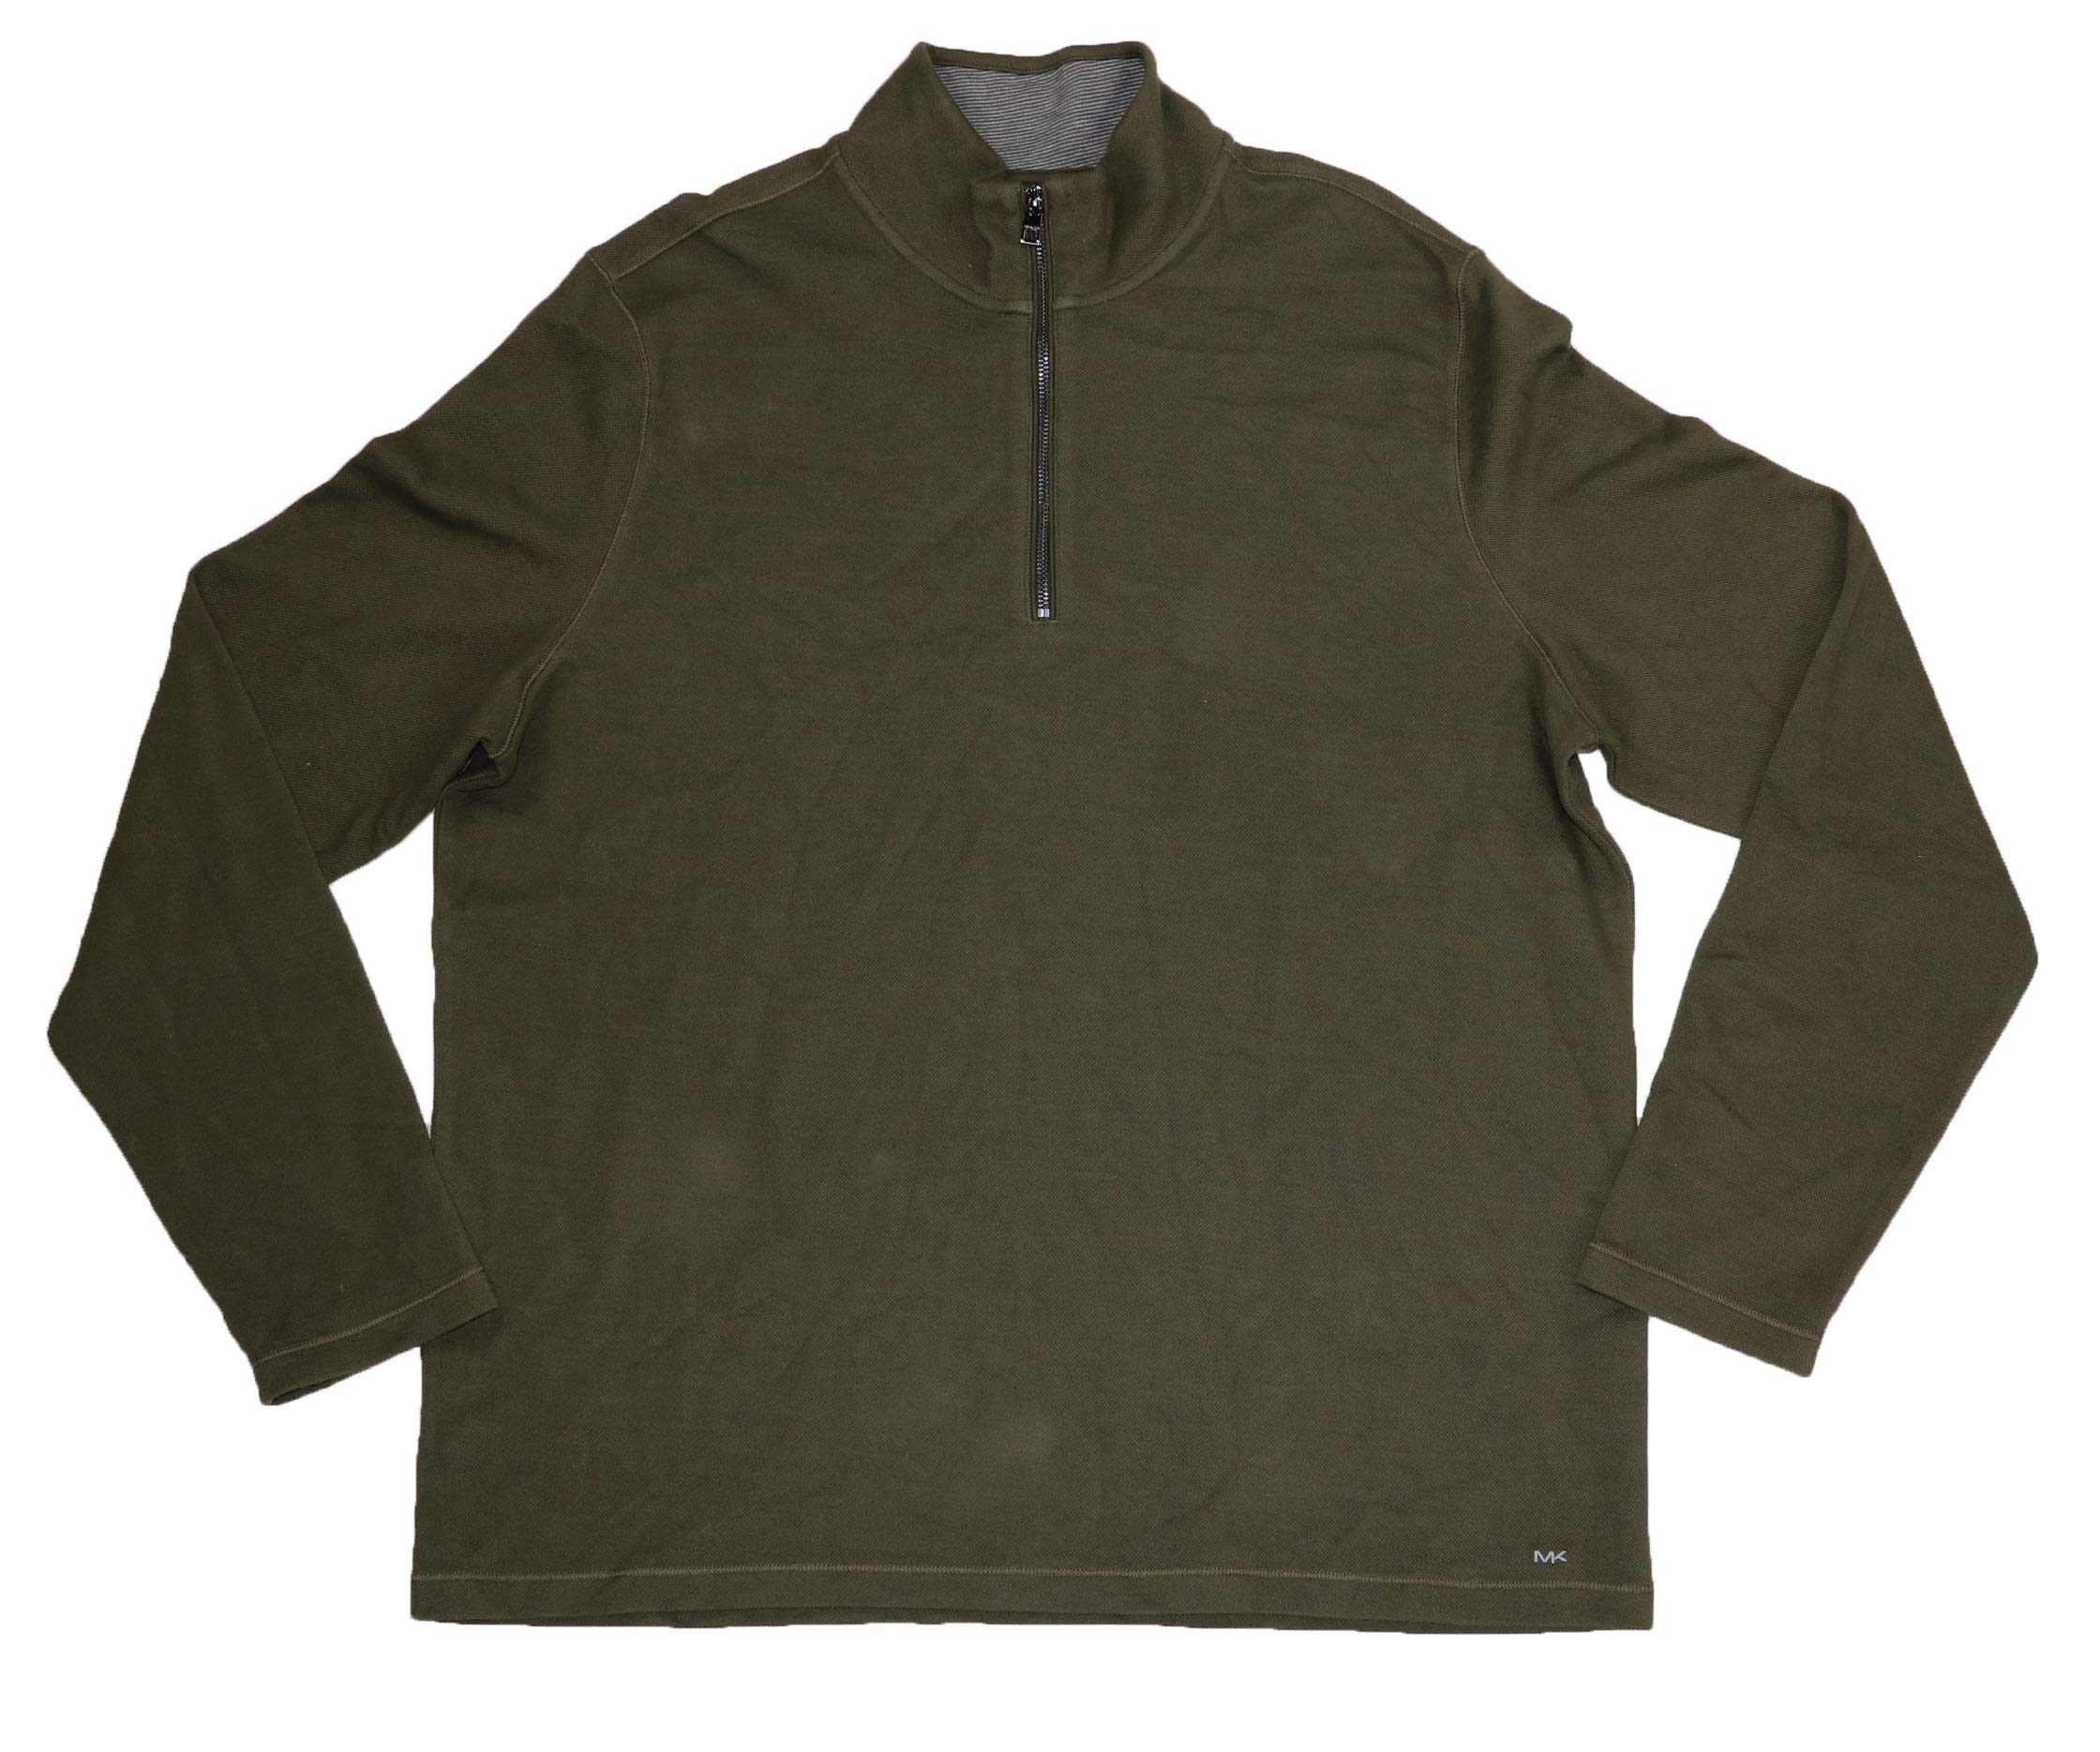 Michael Kors Pique Solid Color Mock Neck 1/4 Zip Pullover Sweater (Olive, XX-Large) by Michael Kors